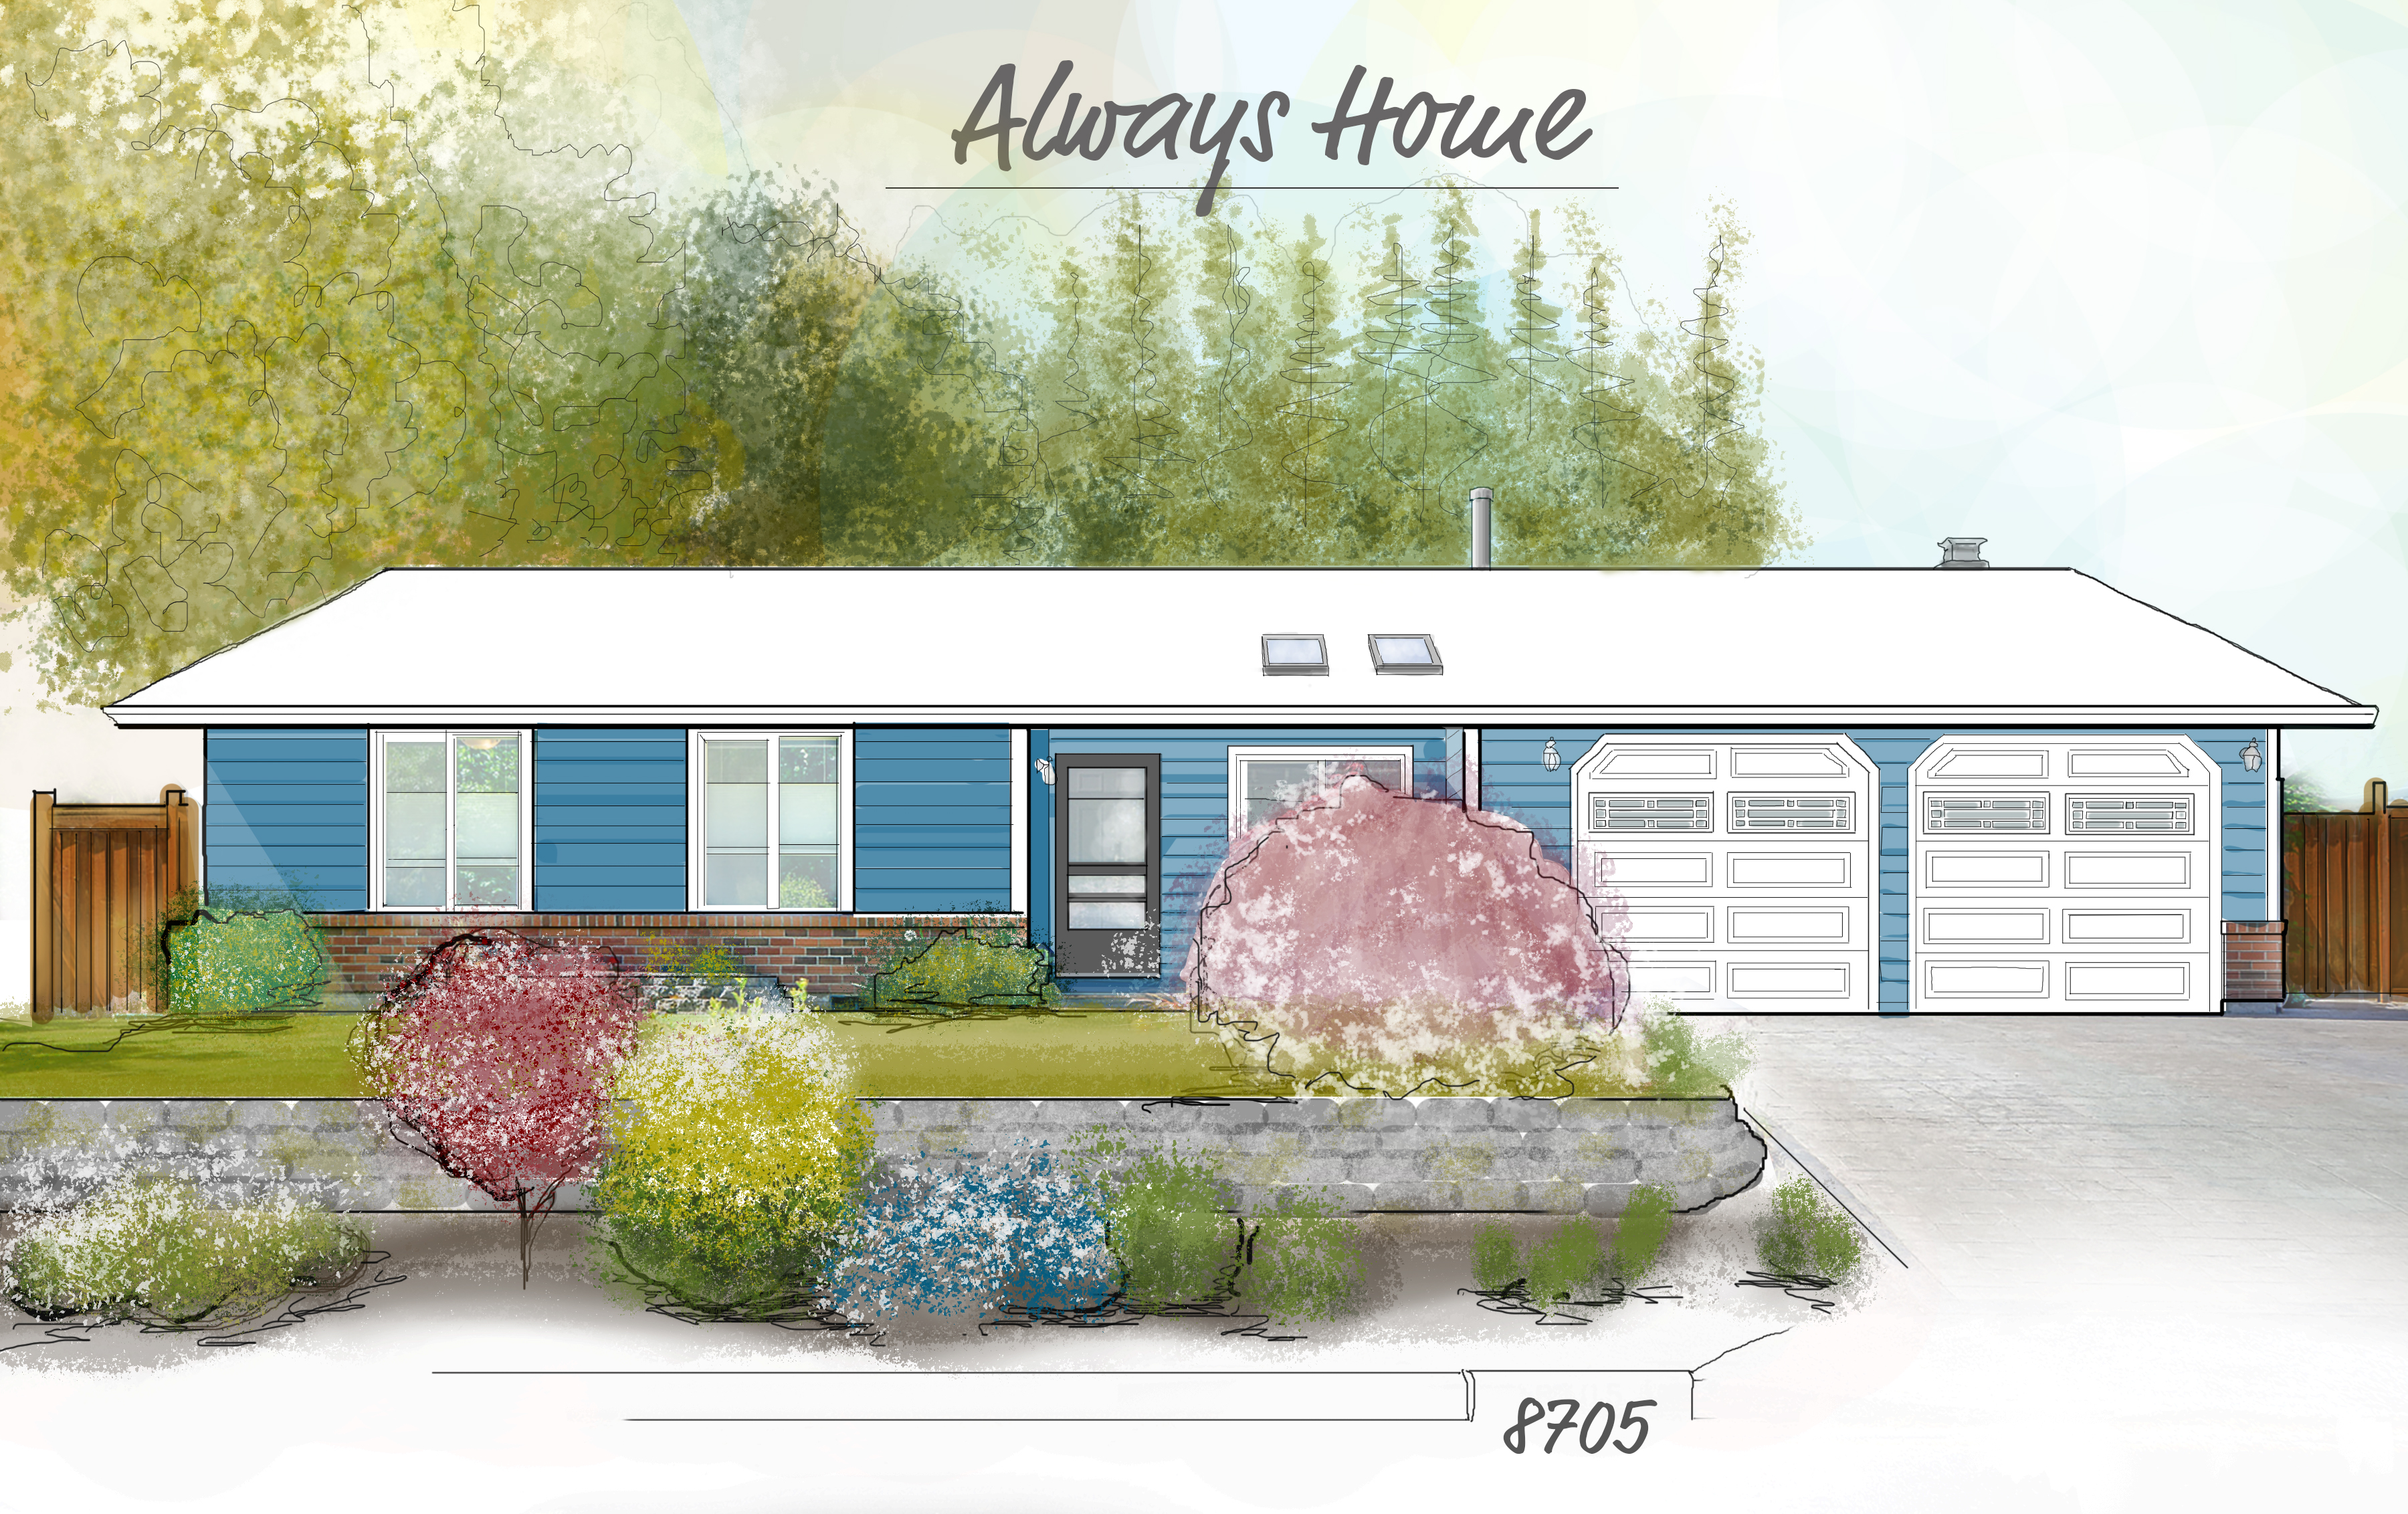 Photoshop drawn and rendered exterior